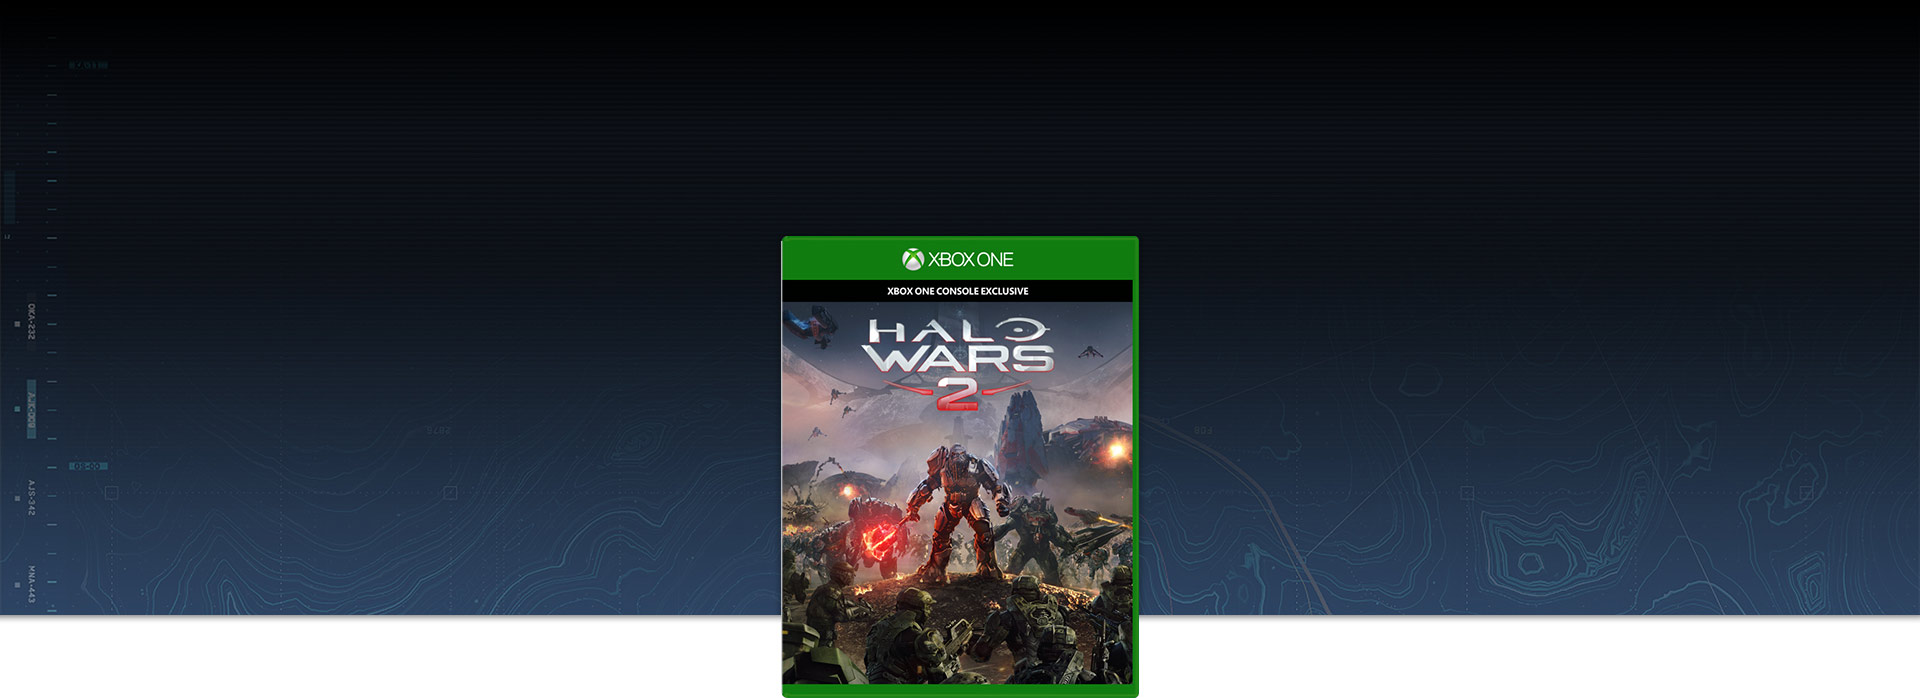 Halo Wars 2 box shot over background of contour map